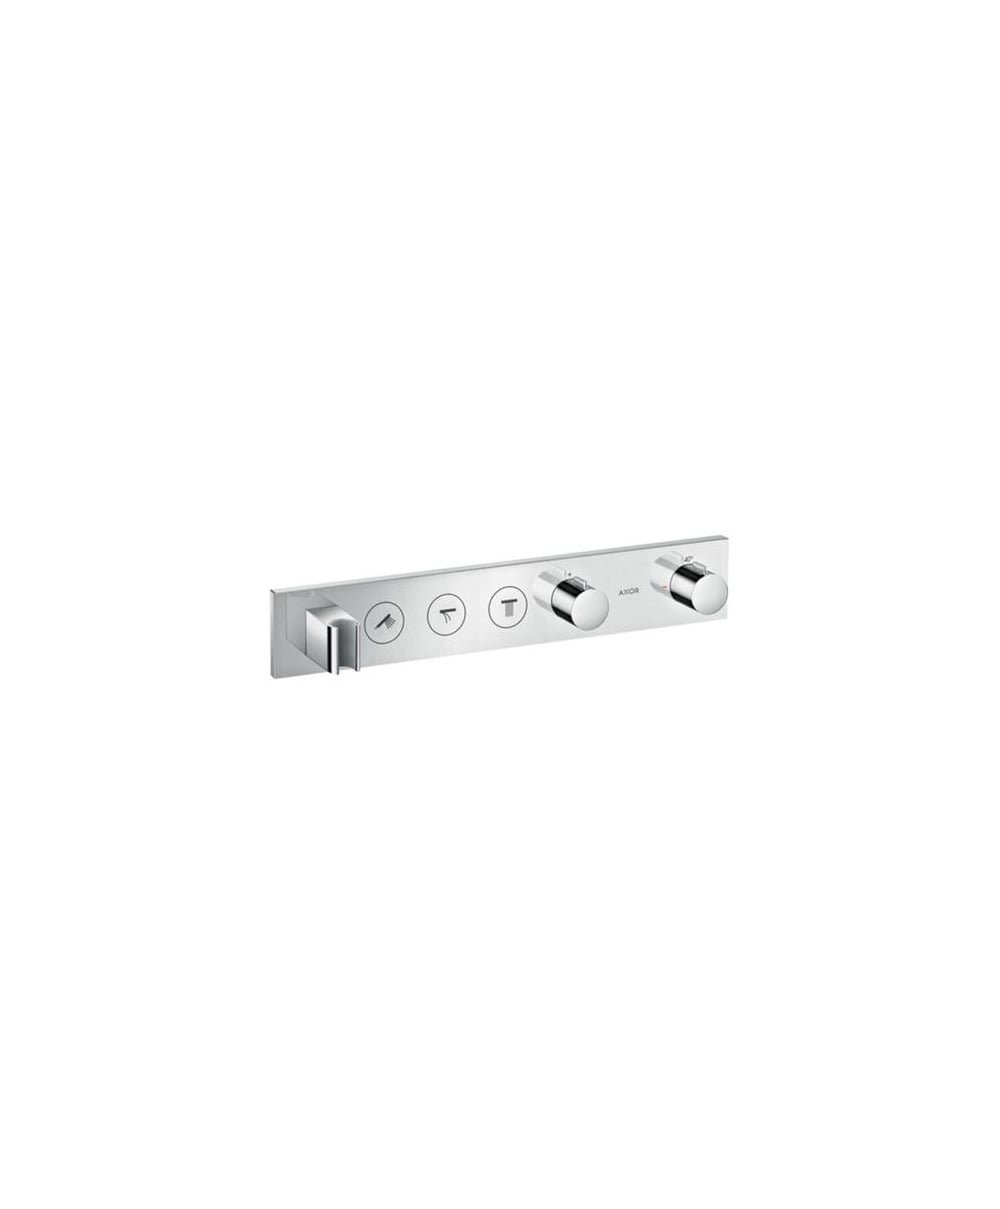 Axor Thermostatic Module Select 530 / 90 Shower Mixer for 3 Outlets